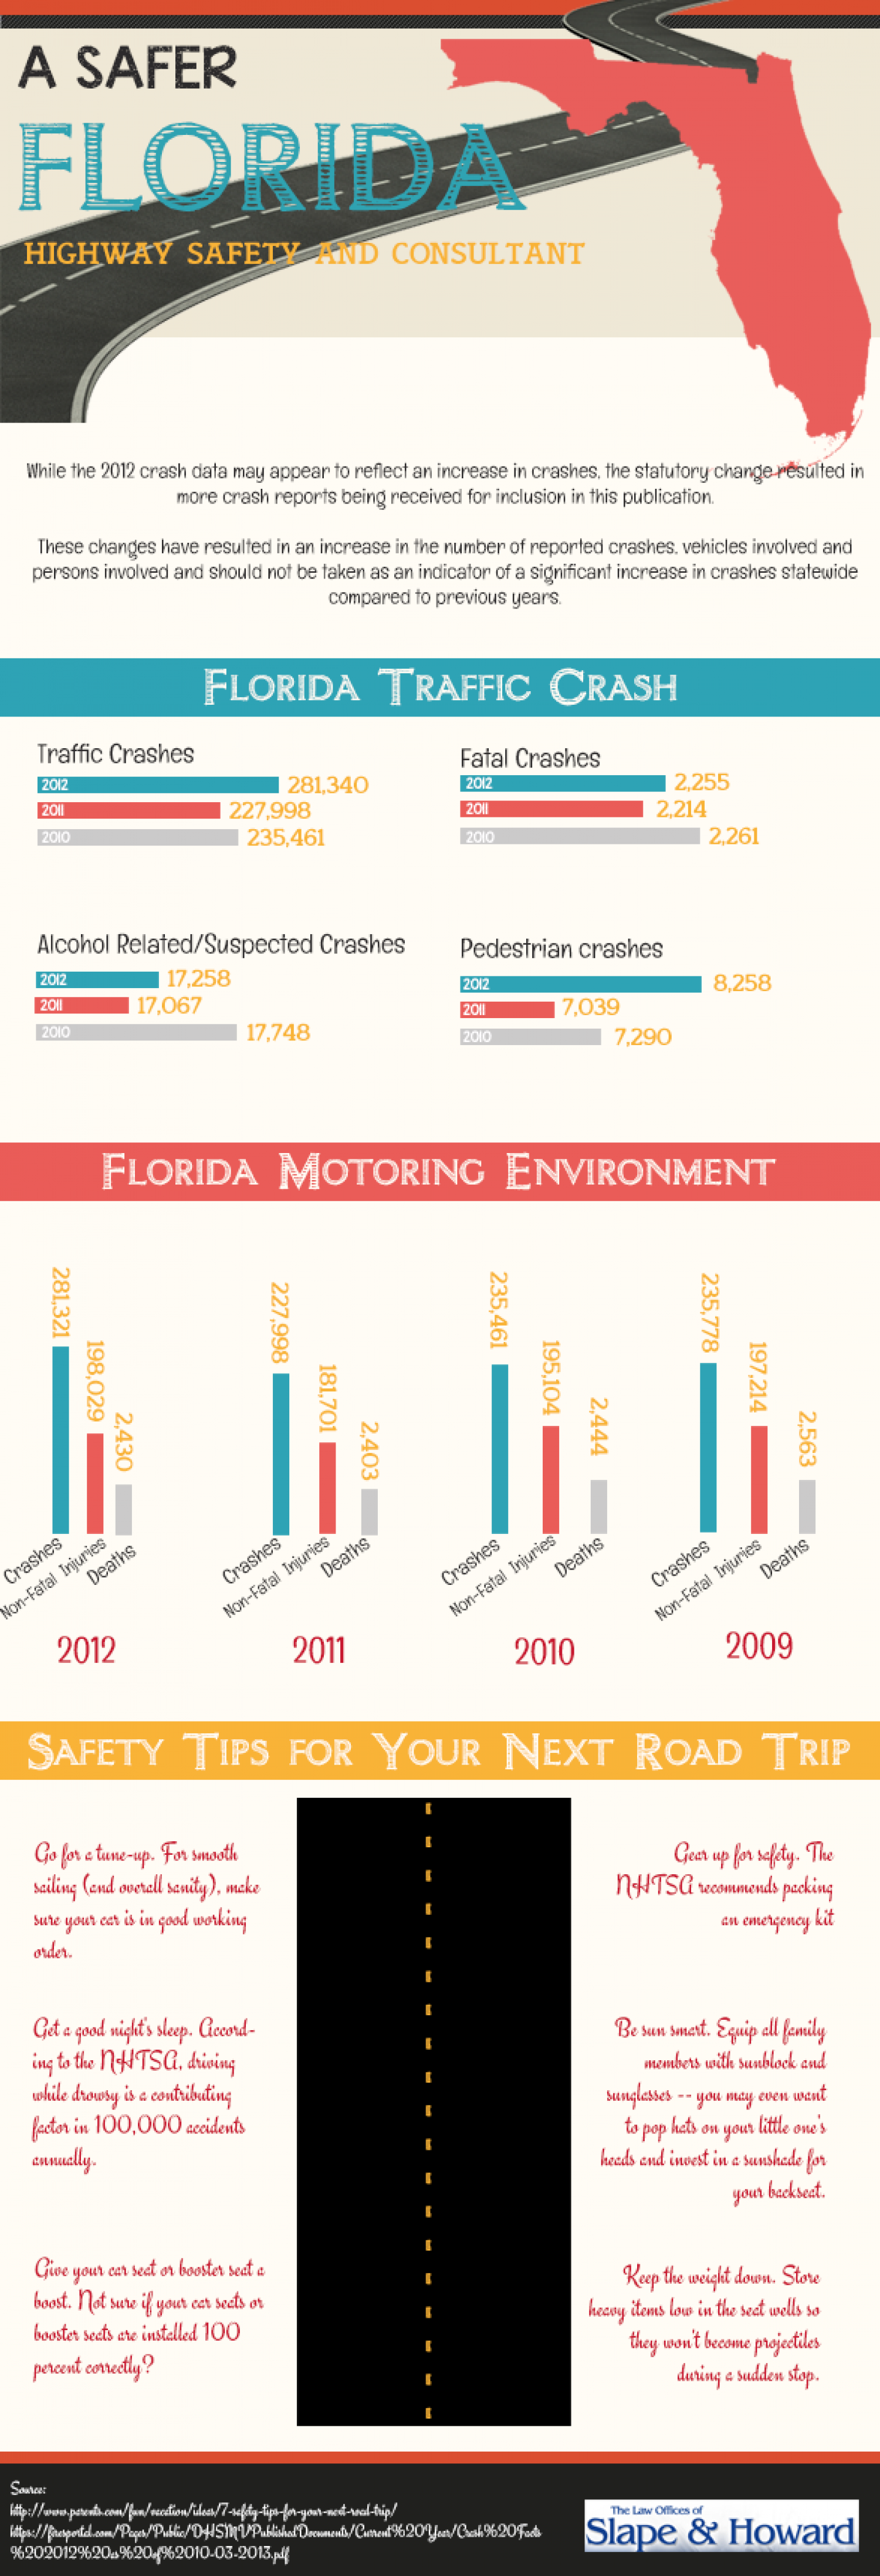 A Safer Florida Highway Safety And Consultant Infographic